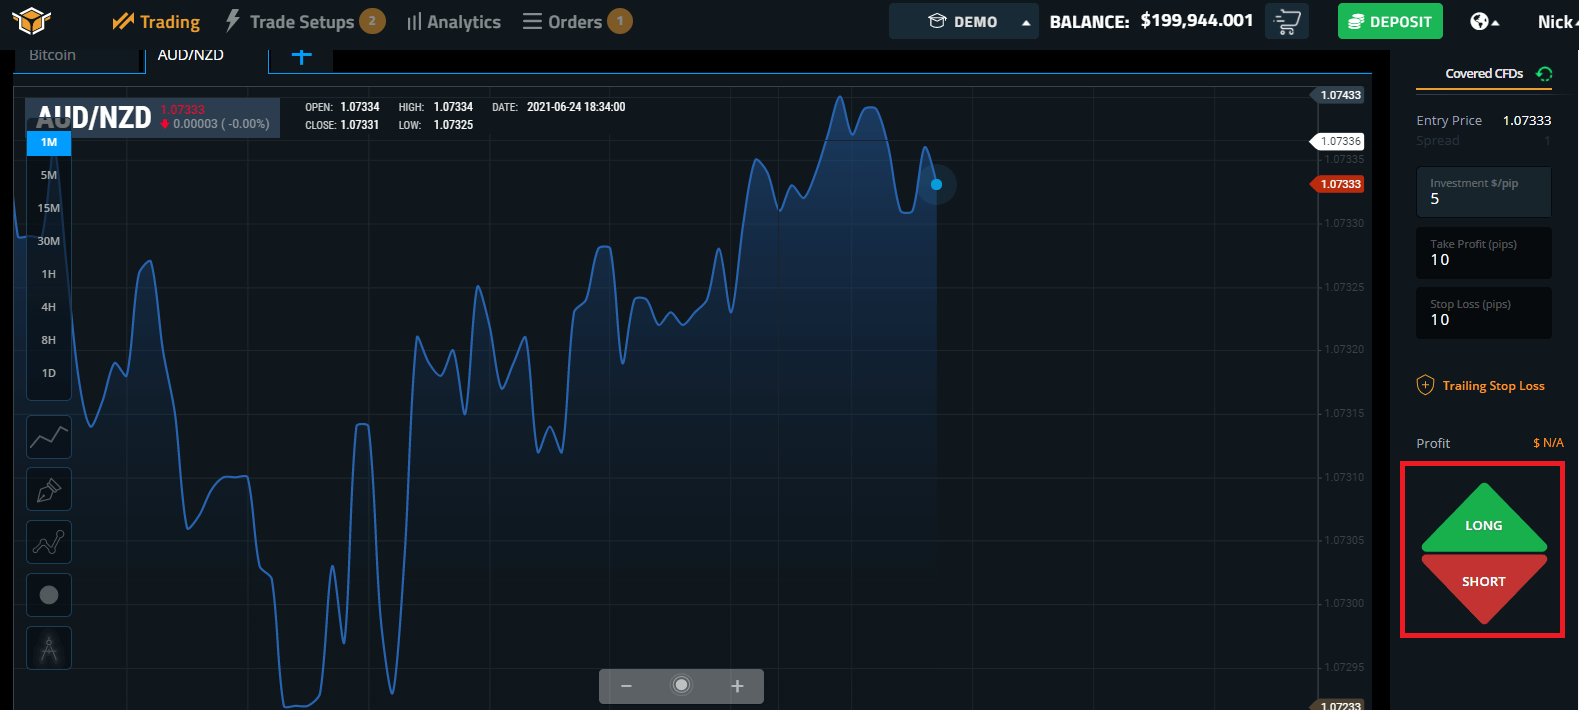 How to Register and Trade Forex at Spectre.ai